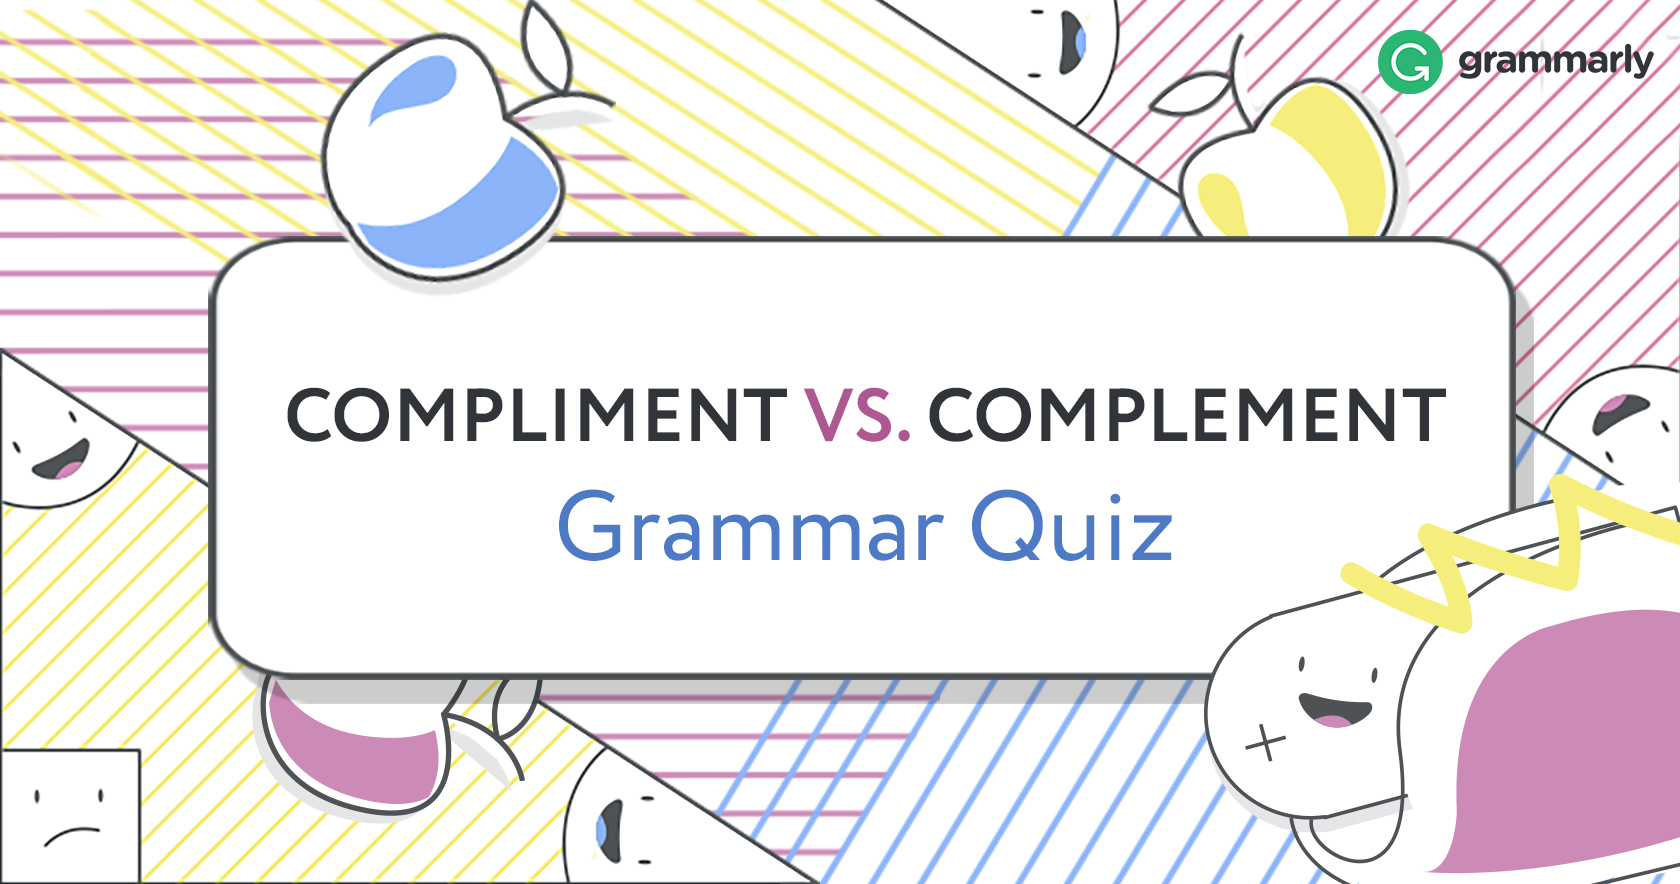 Complement vs  Compliment | Grammarly Blog